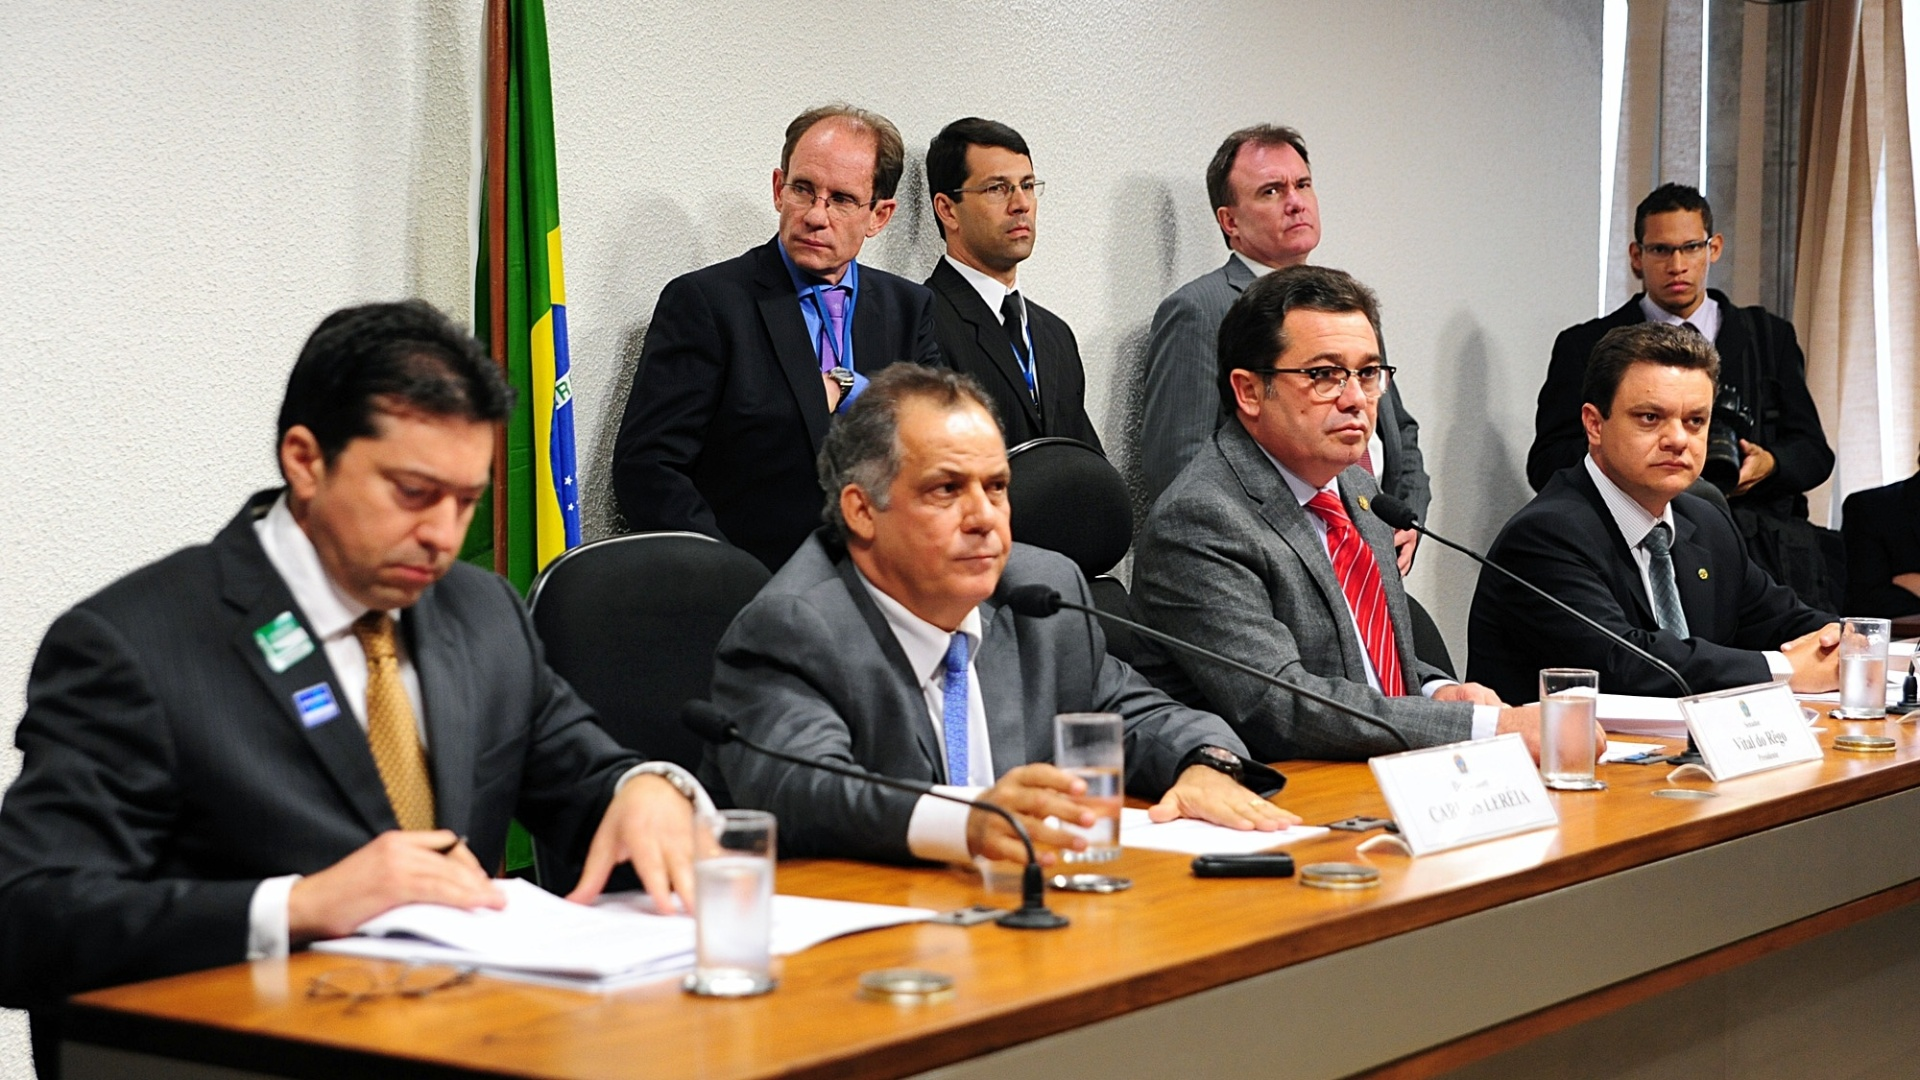 9.out.2012 - CPI interroga o deputado federal Carlos Alberto Leria (PSDB-GO) sobre seu envolvimento com o esquema criminoso de Carlinhos Cachoeira. De acordo com investigaes da Polcia Federal, o parlamentar teria recebido dinheiro da organizao do bixeiro. Alm disso, teria alertado o contraventor sobre uma operao policial e usado o carto dele para fazer compras